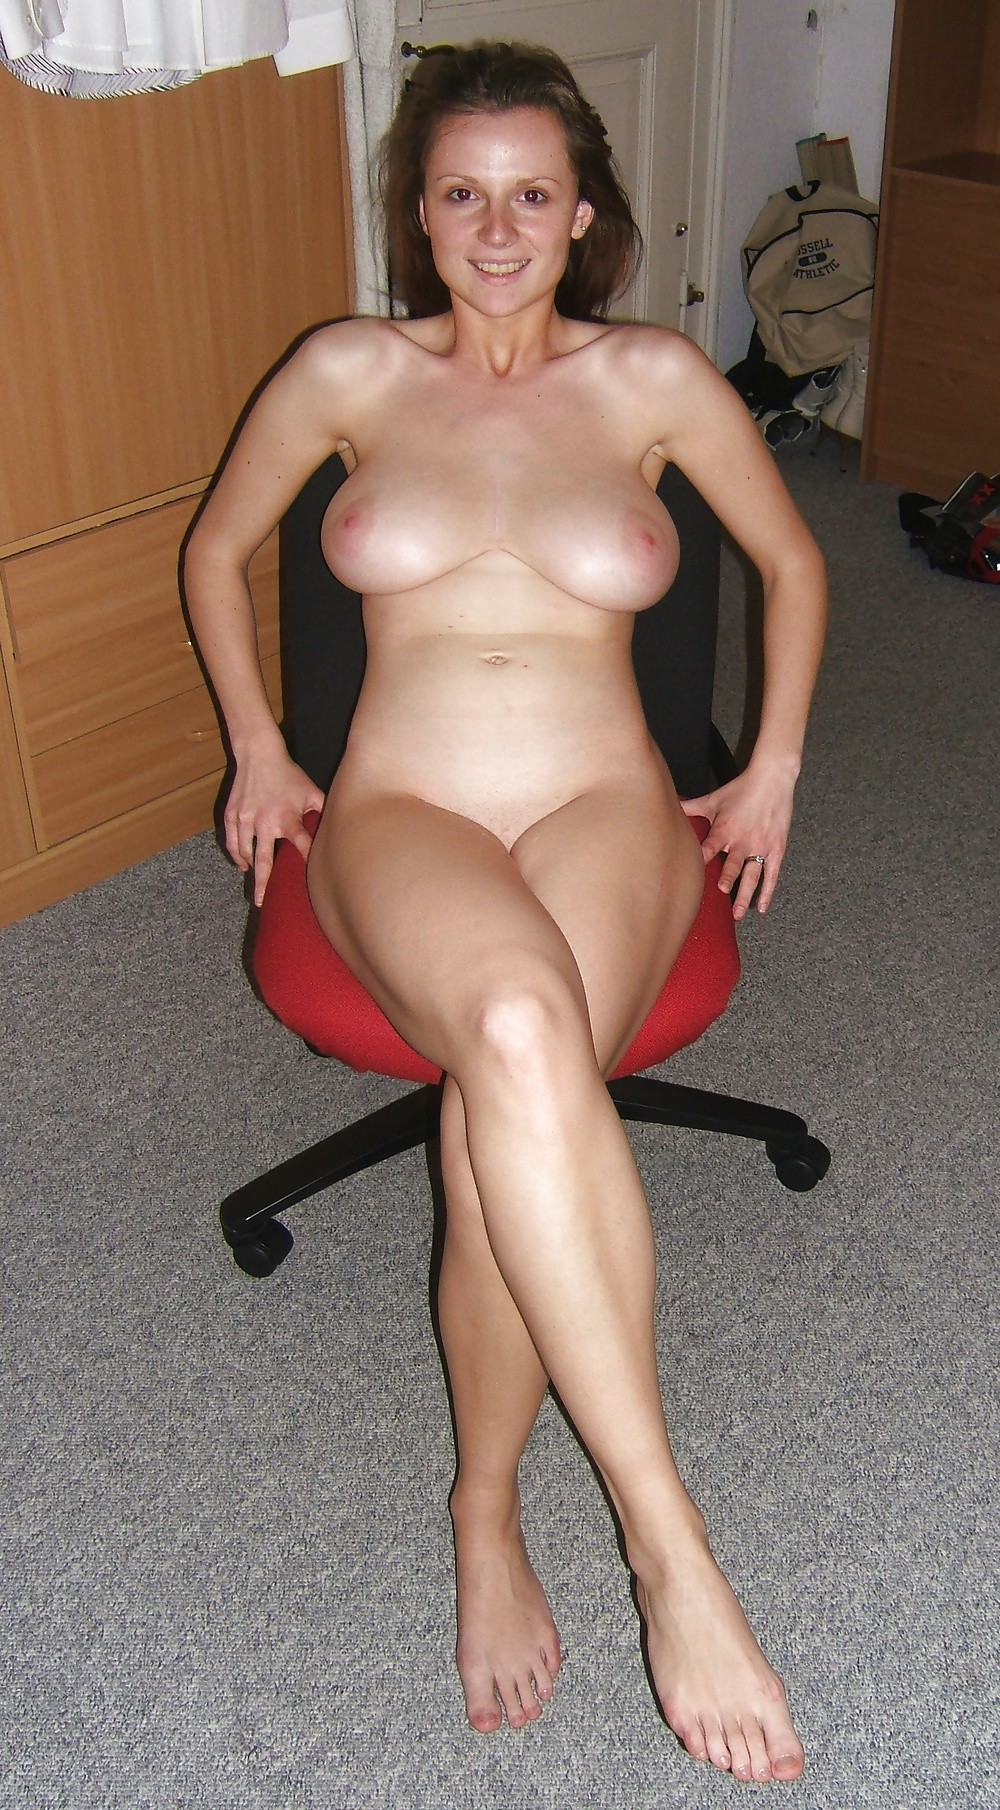 Posted amateur wife busty forum — 9